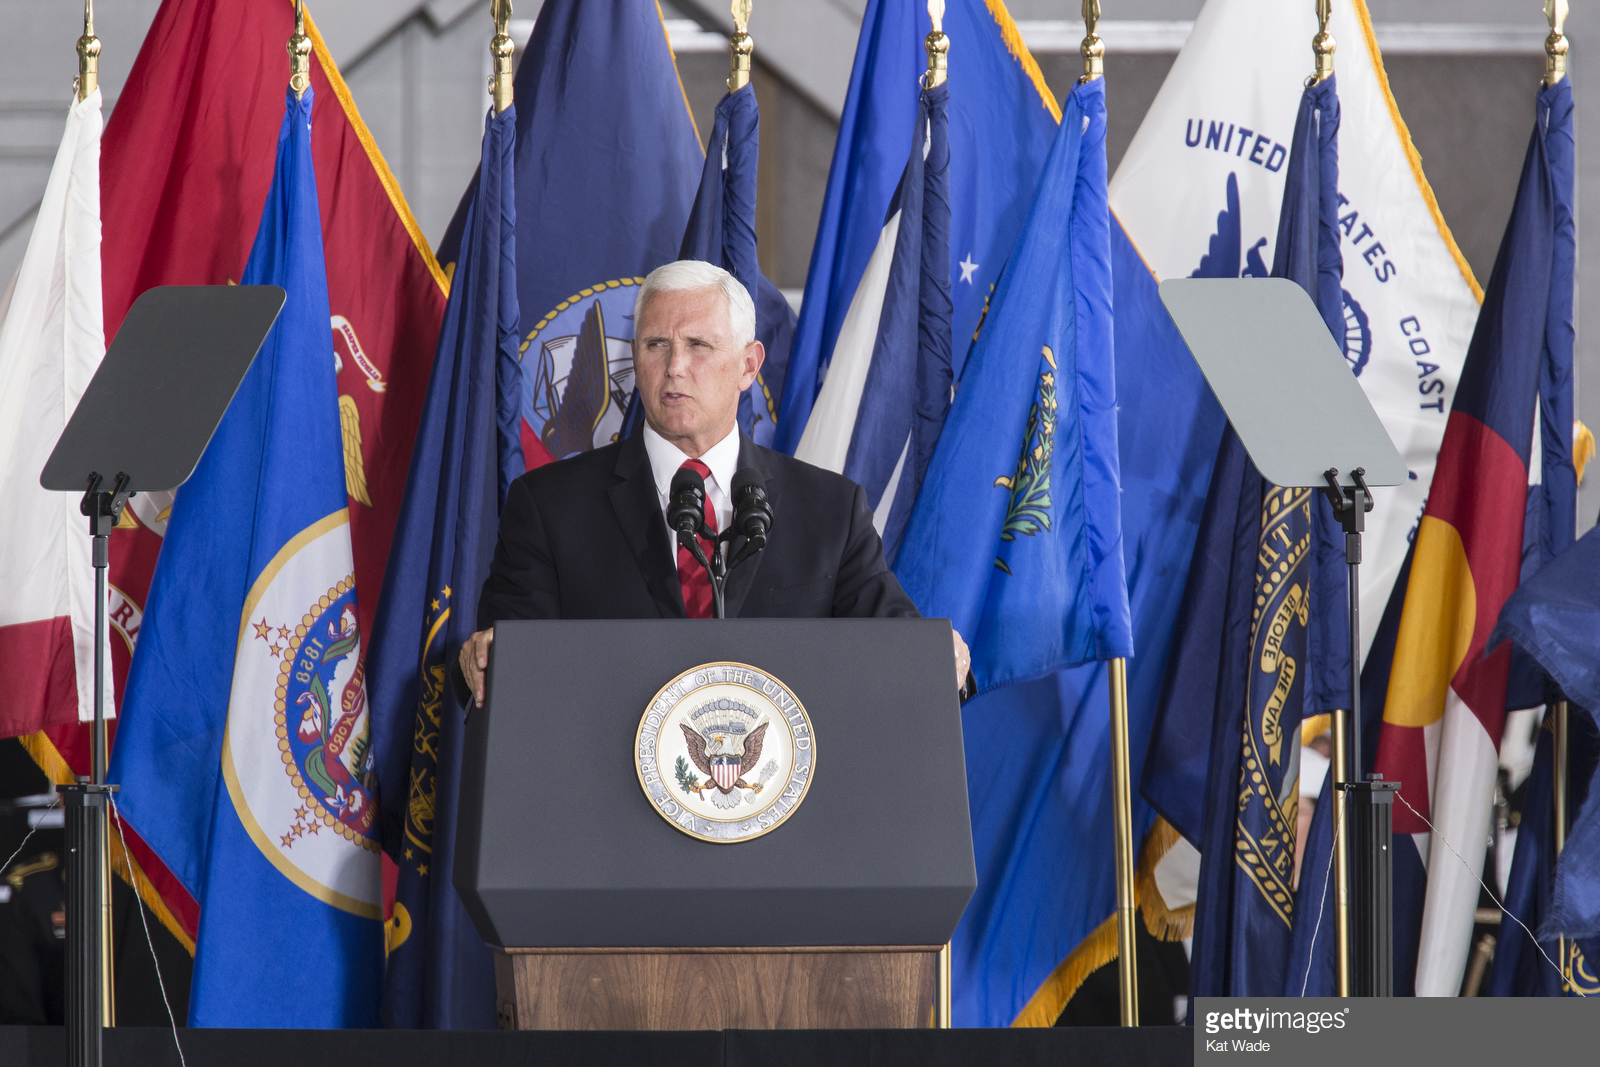 getty VP PENCE_CEREMONY_jkw 15